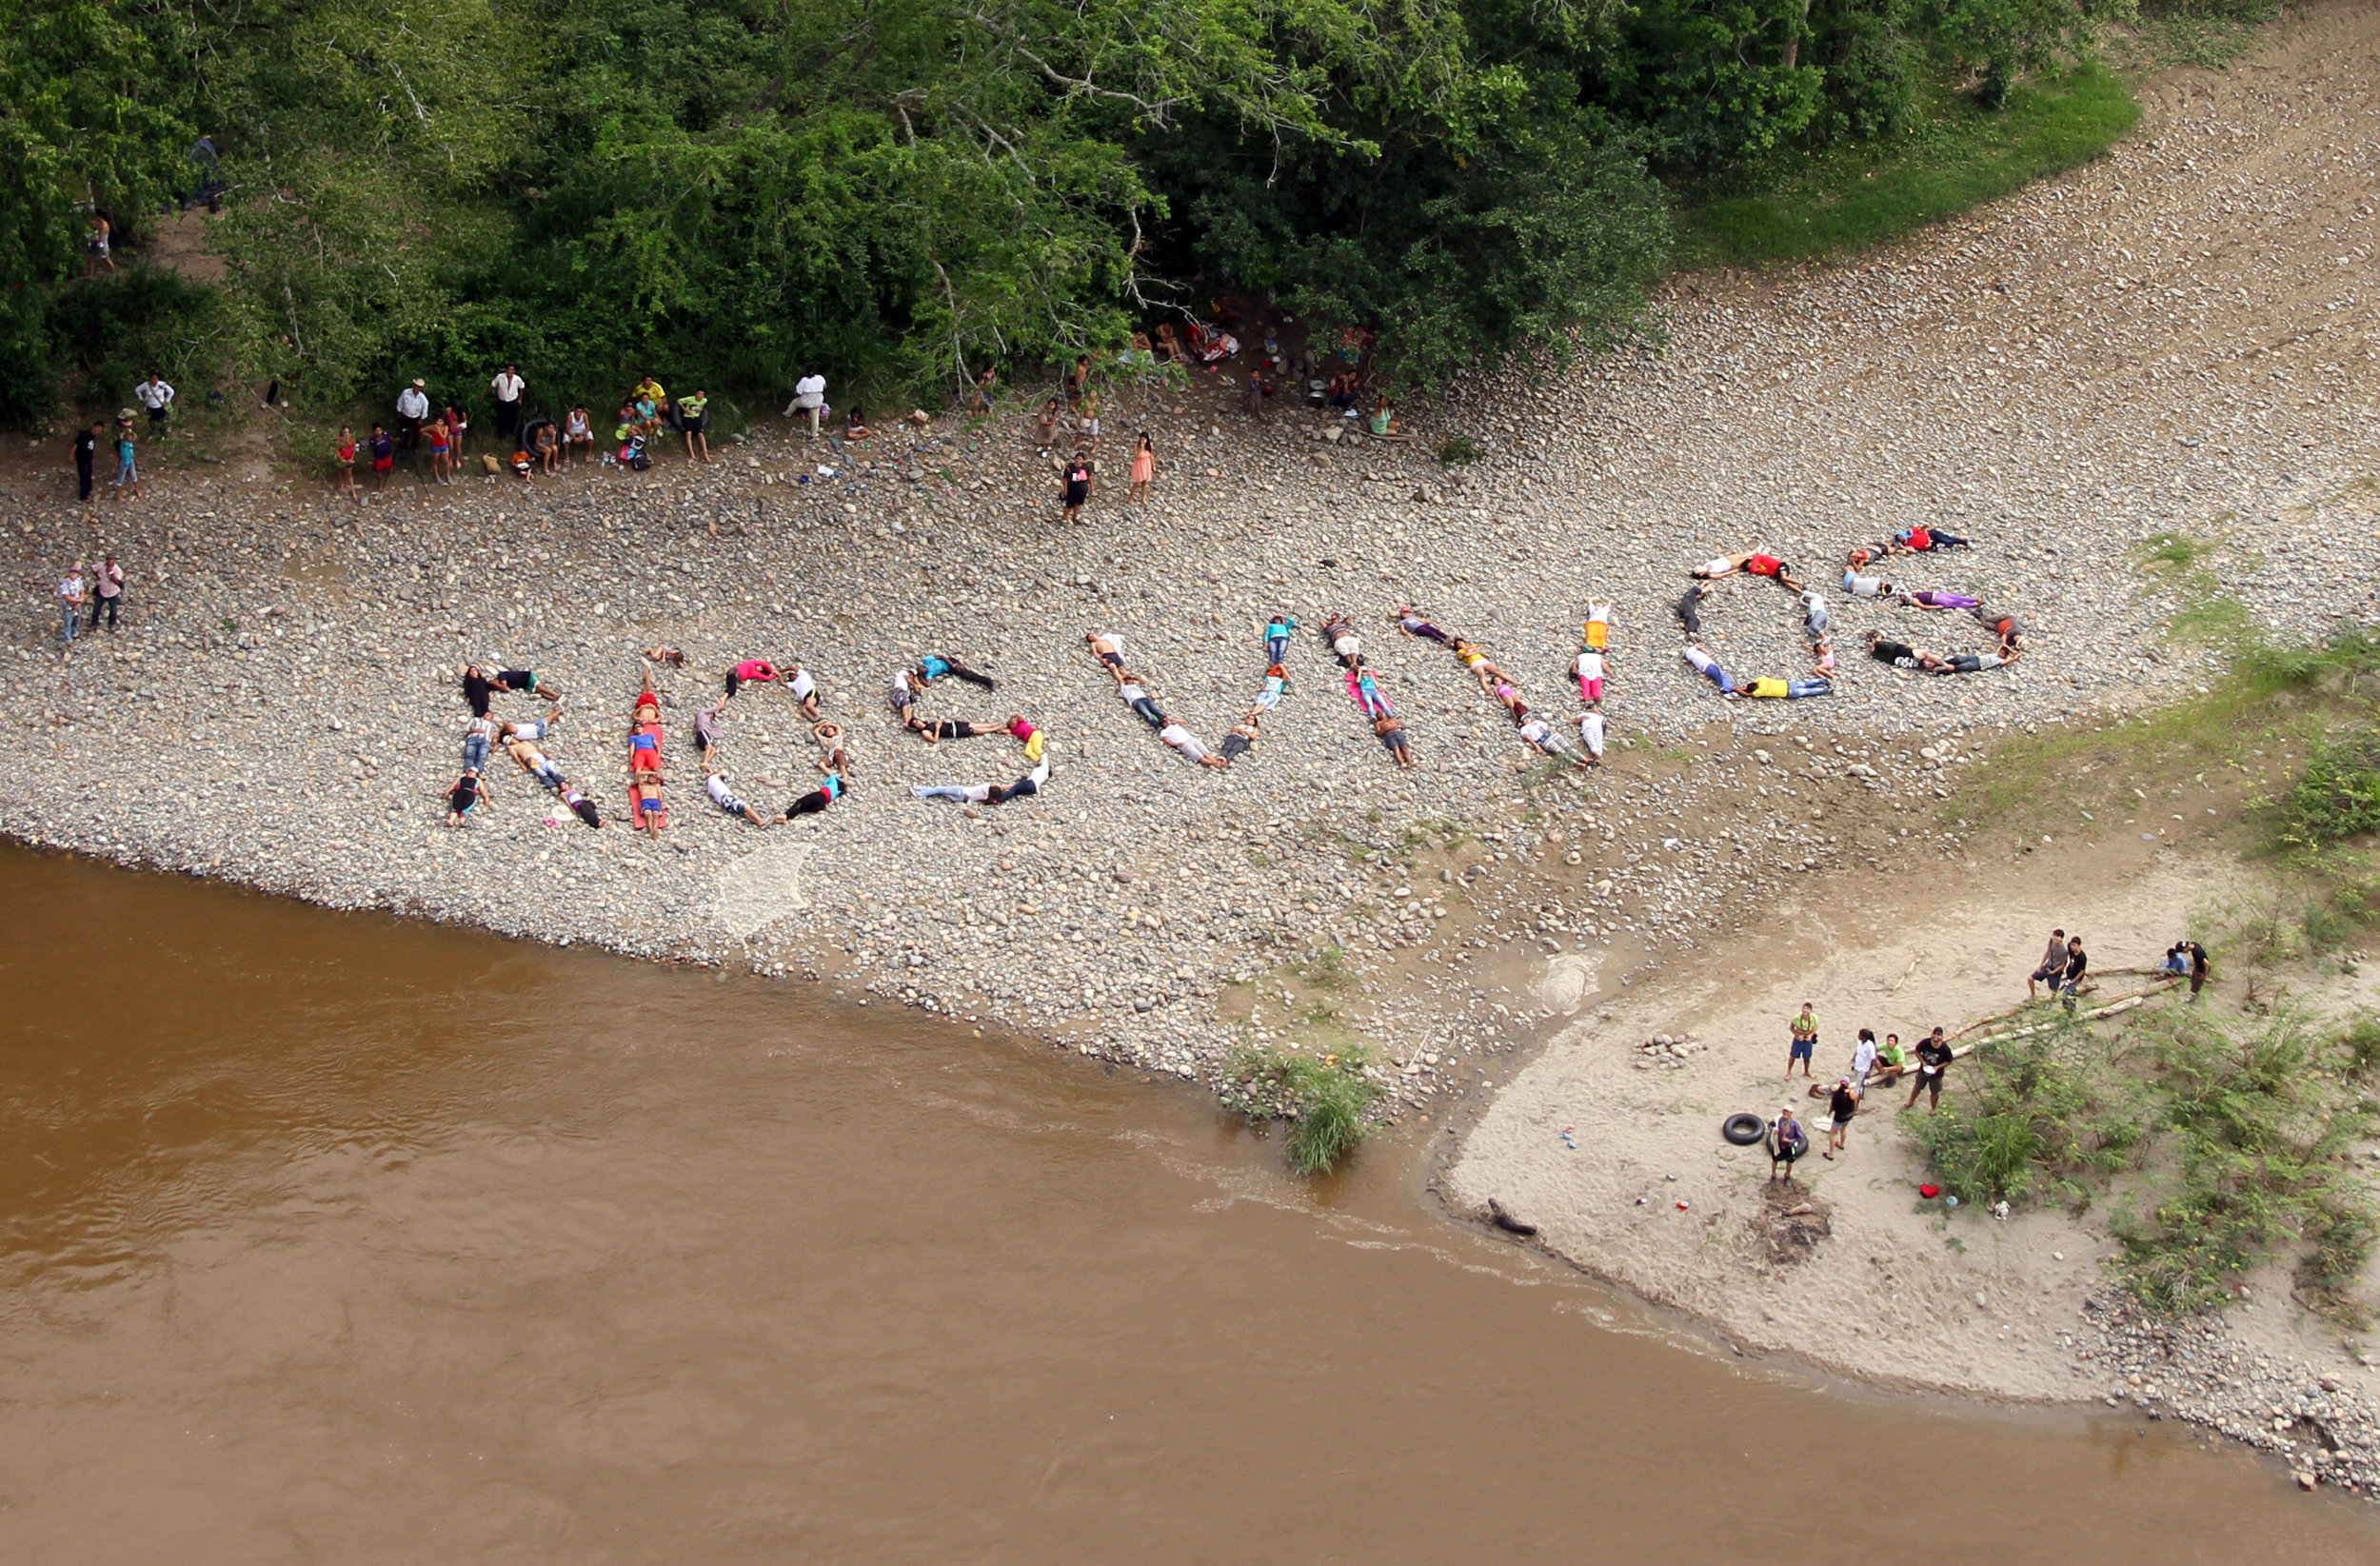 Rios Vivos, 2014. Collective Action in La Jagua, Magdalena River Colombia. Courtesy of Jaguos por el Territorio, used with permission of the artist.